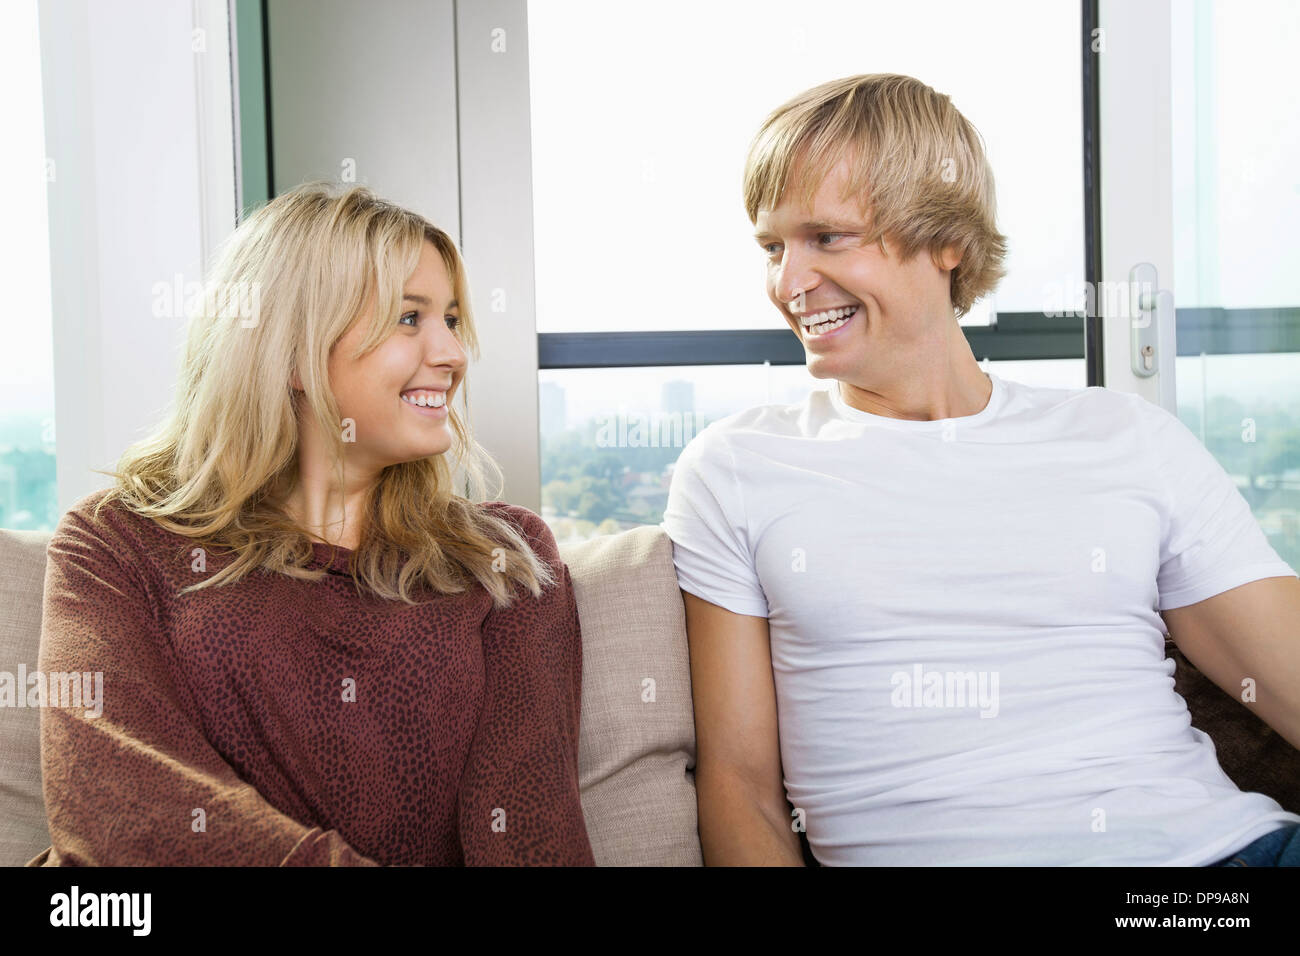 Cheerful couple sitting on sofa and looking at each other at home - Stock Image